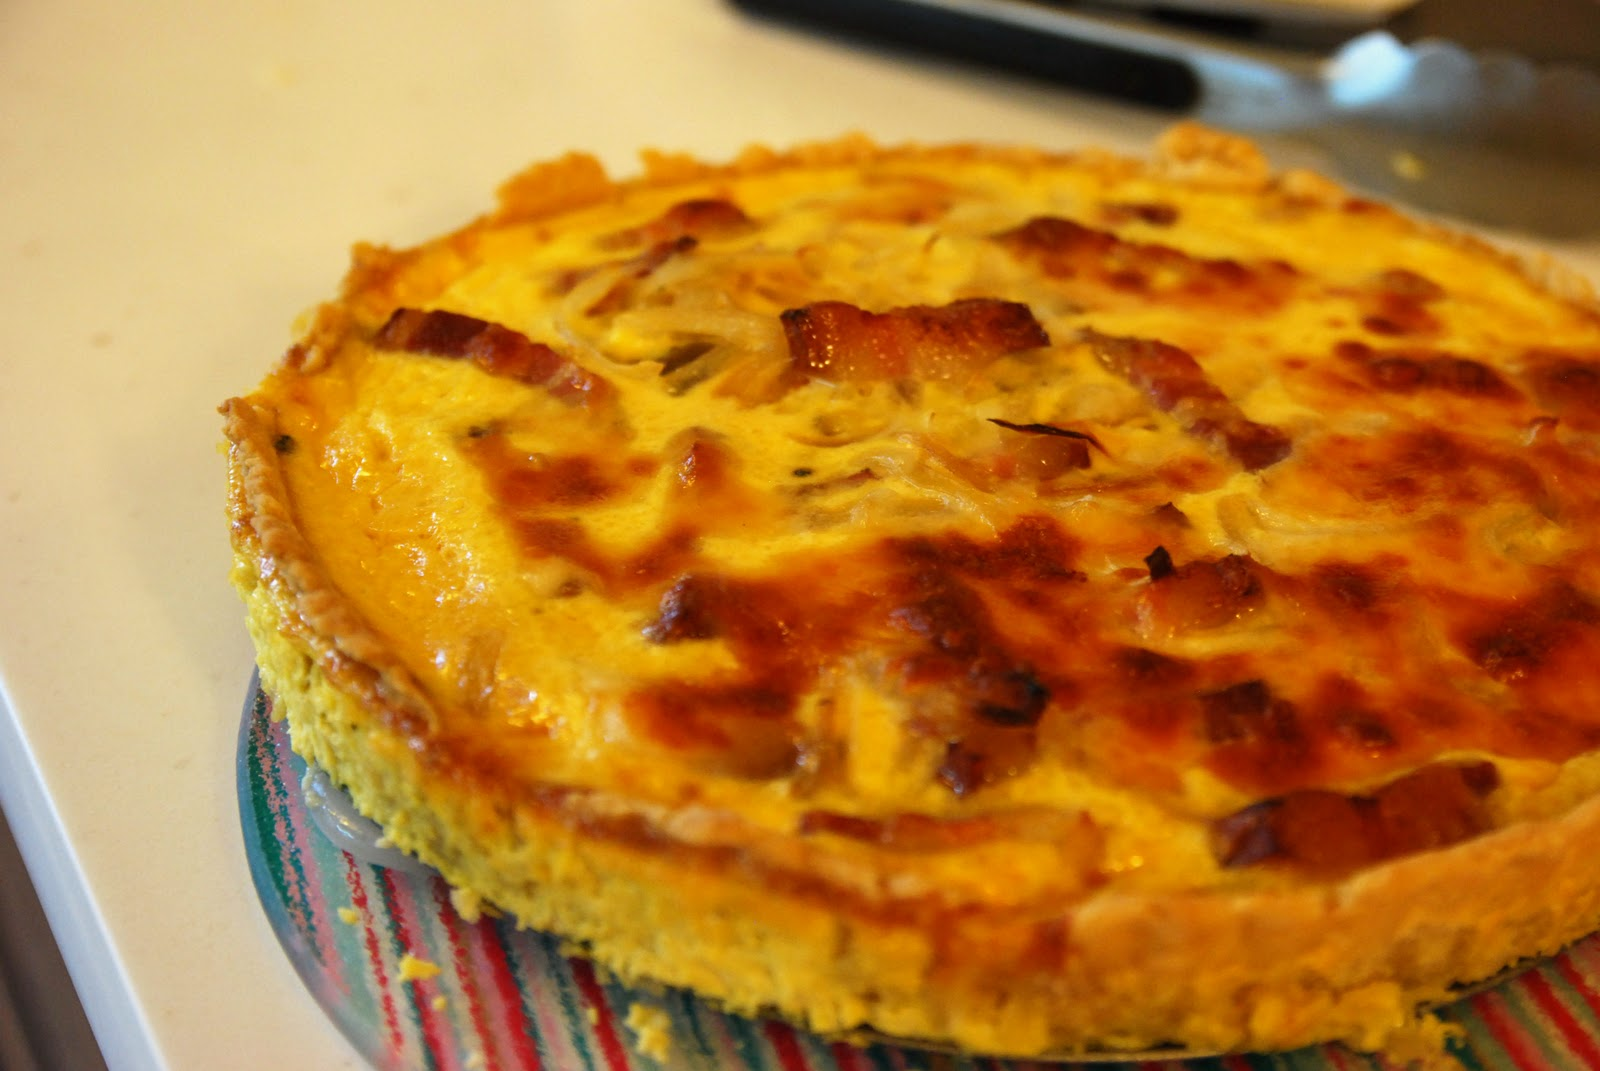 Quiche lorraine joie de vivre blog by g4gary i roughly followed the recipe from bbc good food its not the prettiest quiche but at least it tasted alright i think forumfinder Image collections